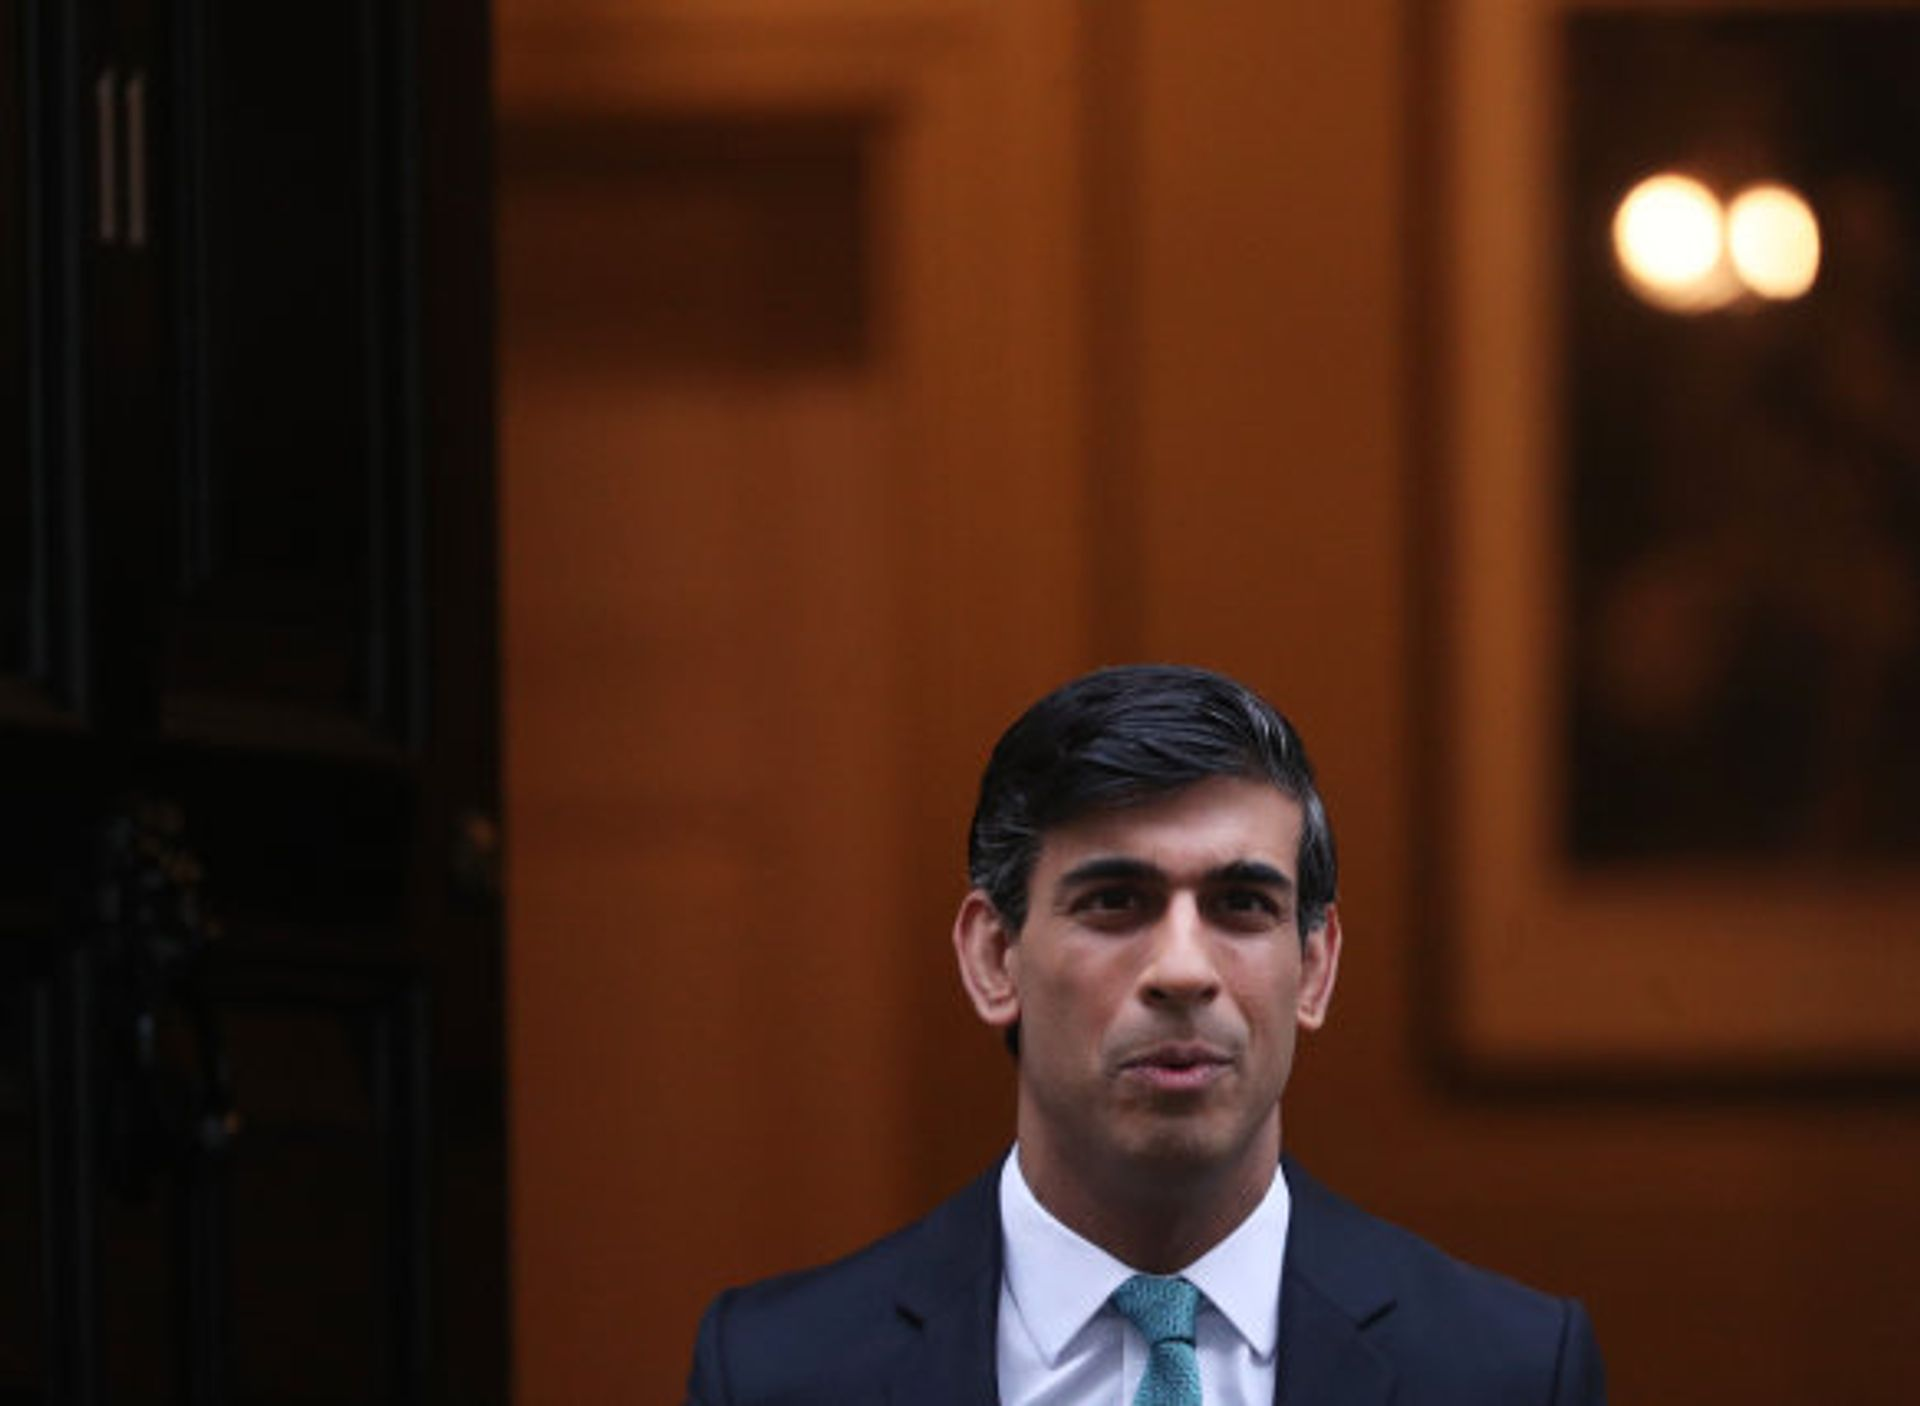 UK Chancellor Rishi Sunak delivered a sobering Spending Review this week